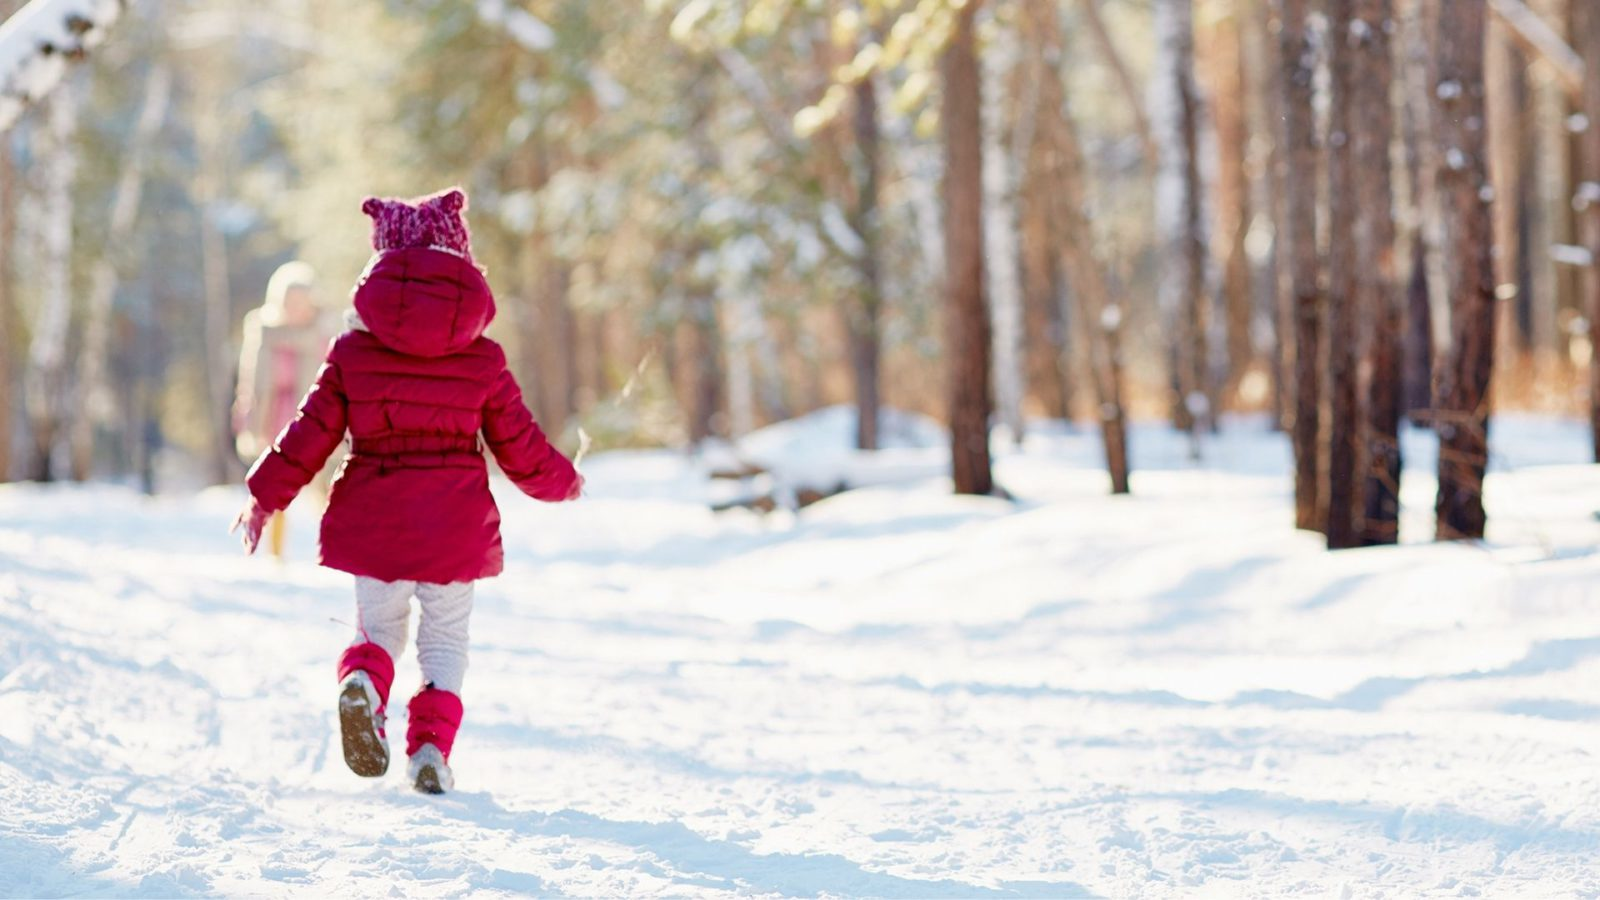 A child in a red jacket, a square knitted pink hat, white leggings, and red boots walks cheerfully down a snowy path. Trees surround either side of the path.